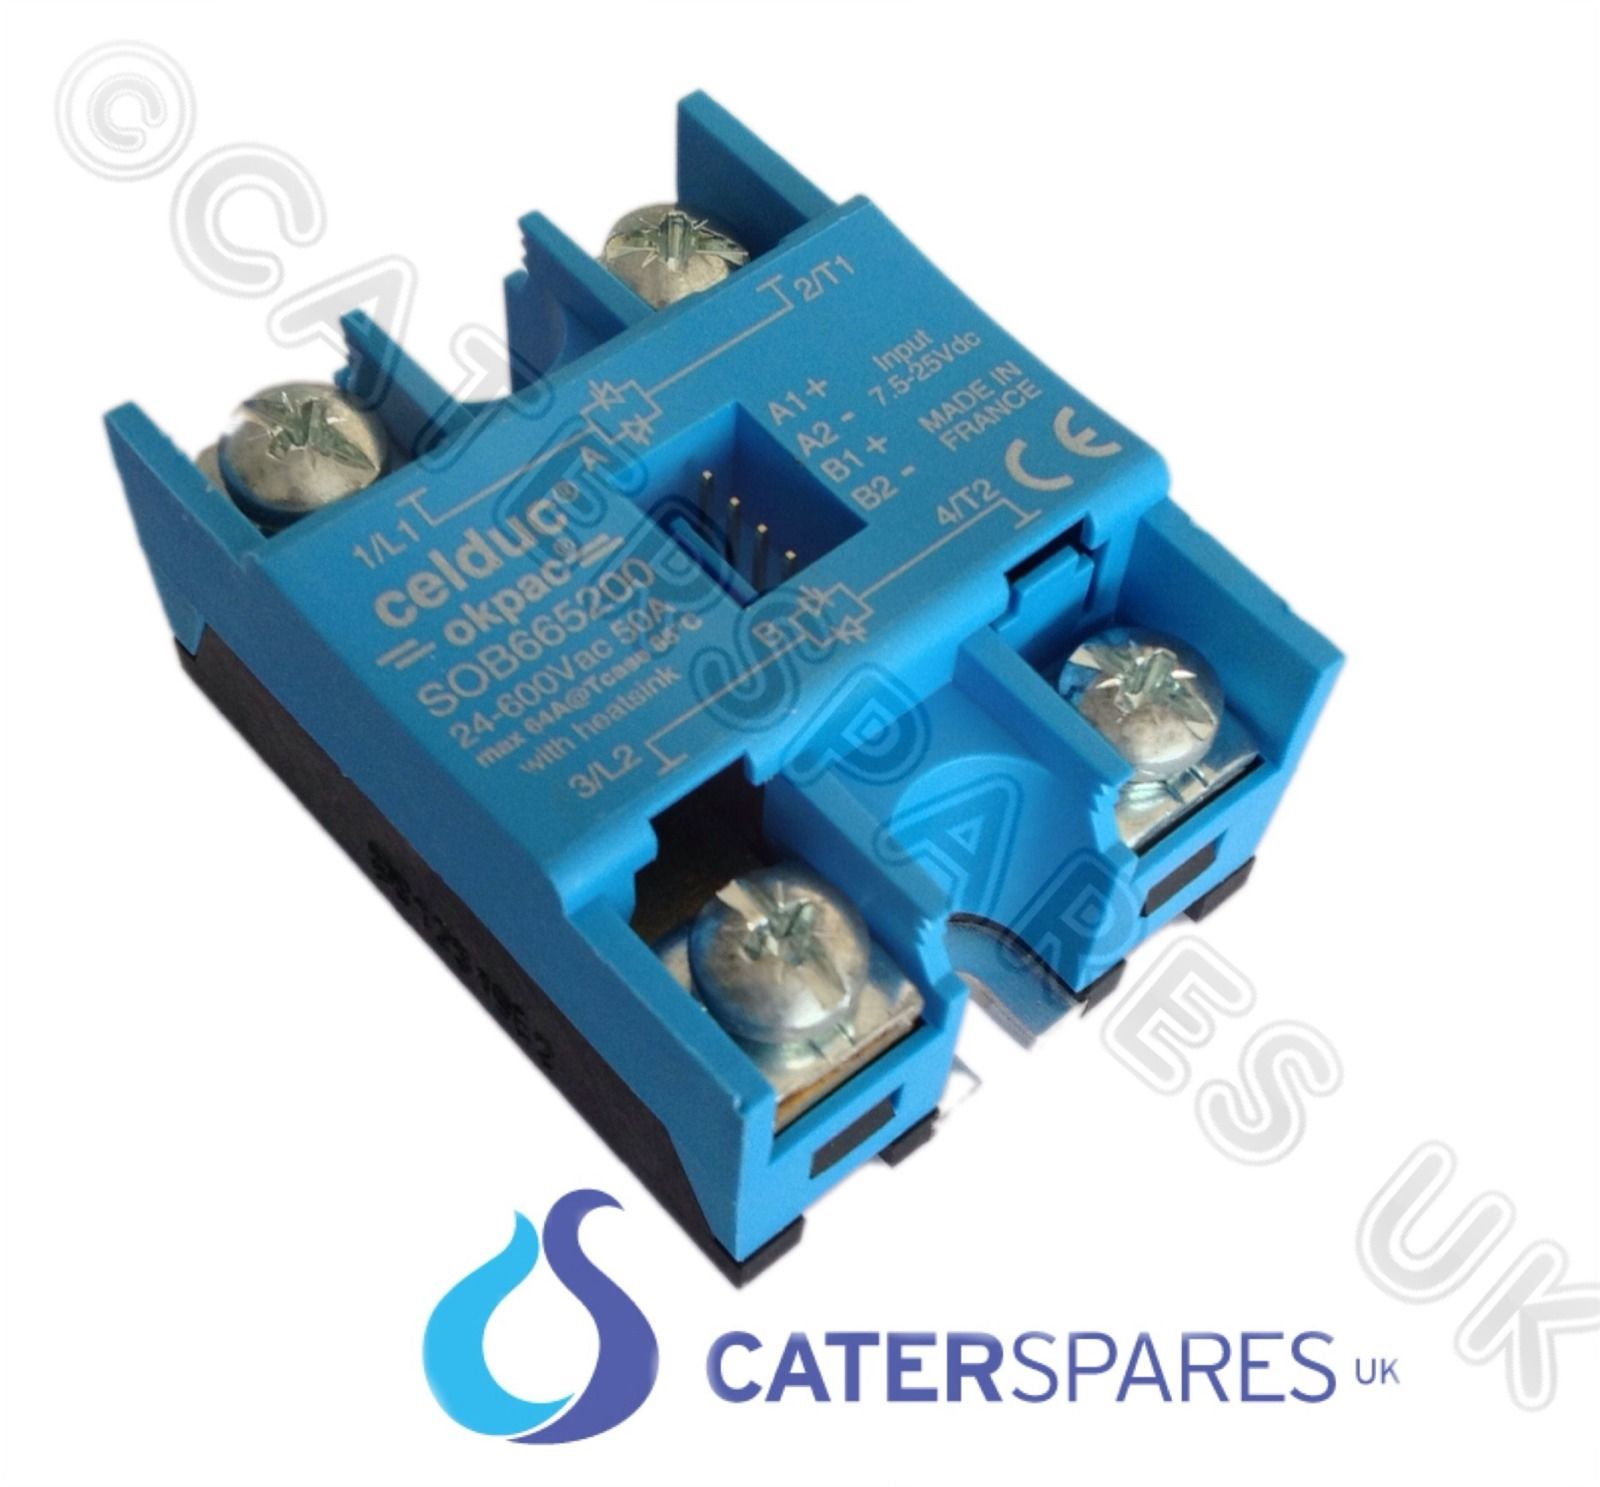 Rational Combi Steam Oven Solid State Relay New Type Ssr Cpc  U0026 Scc Models Parts  U2013 Catersparesuk